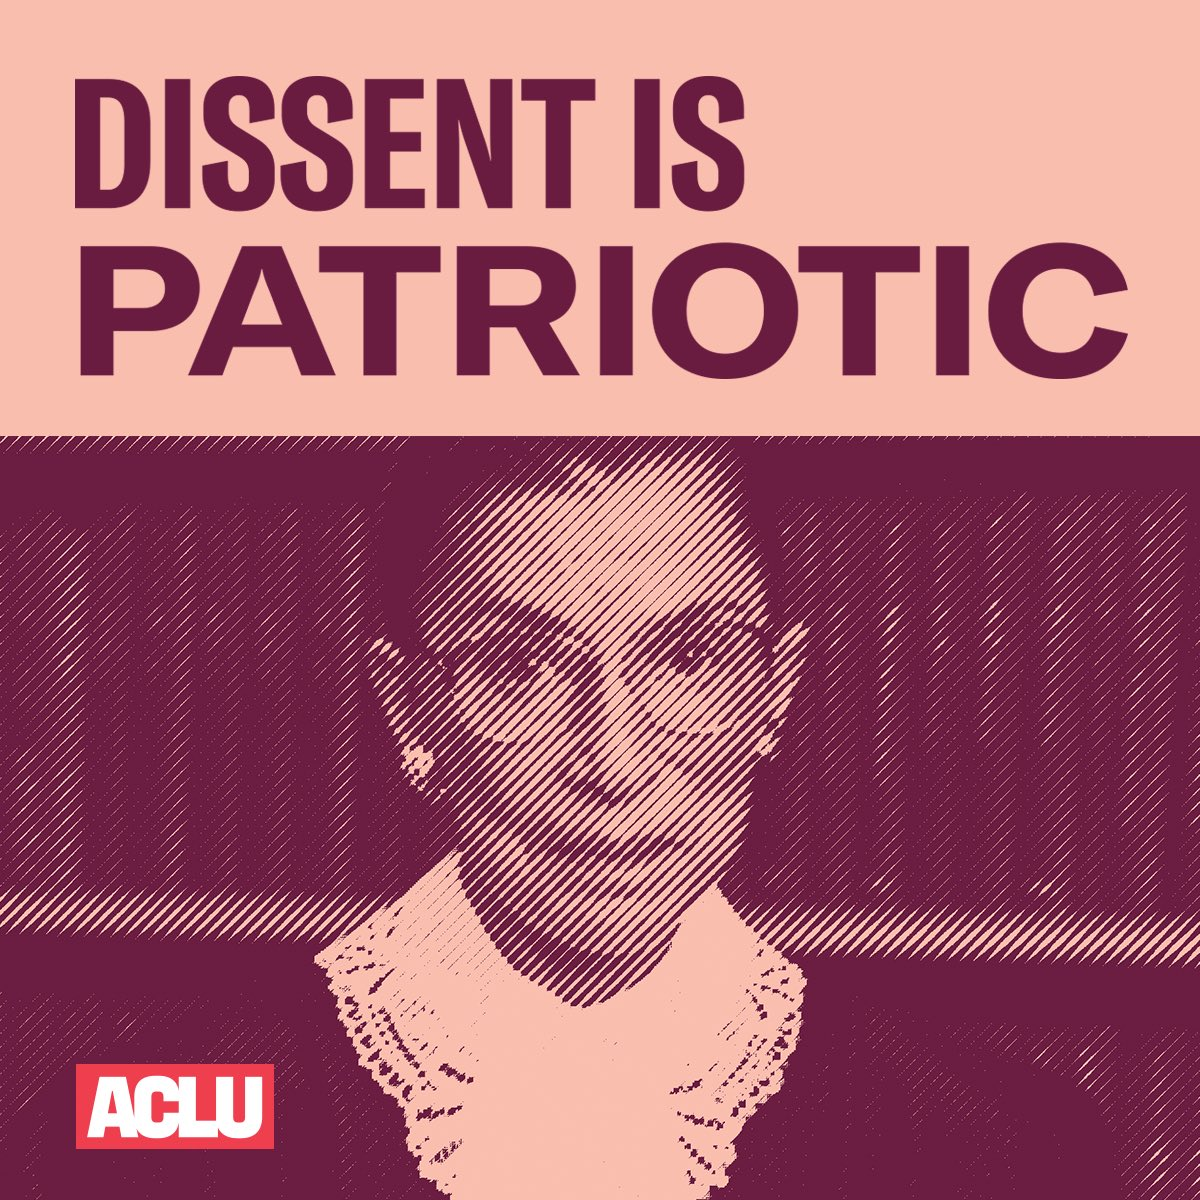 To everyone who plans to exercise their First Amendment rights in a Women's March today— dissent is patriotic and we at the ACLU march with you.